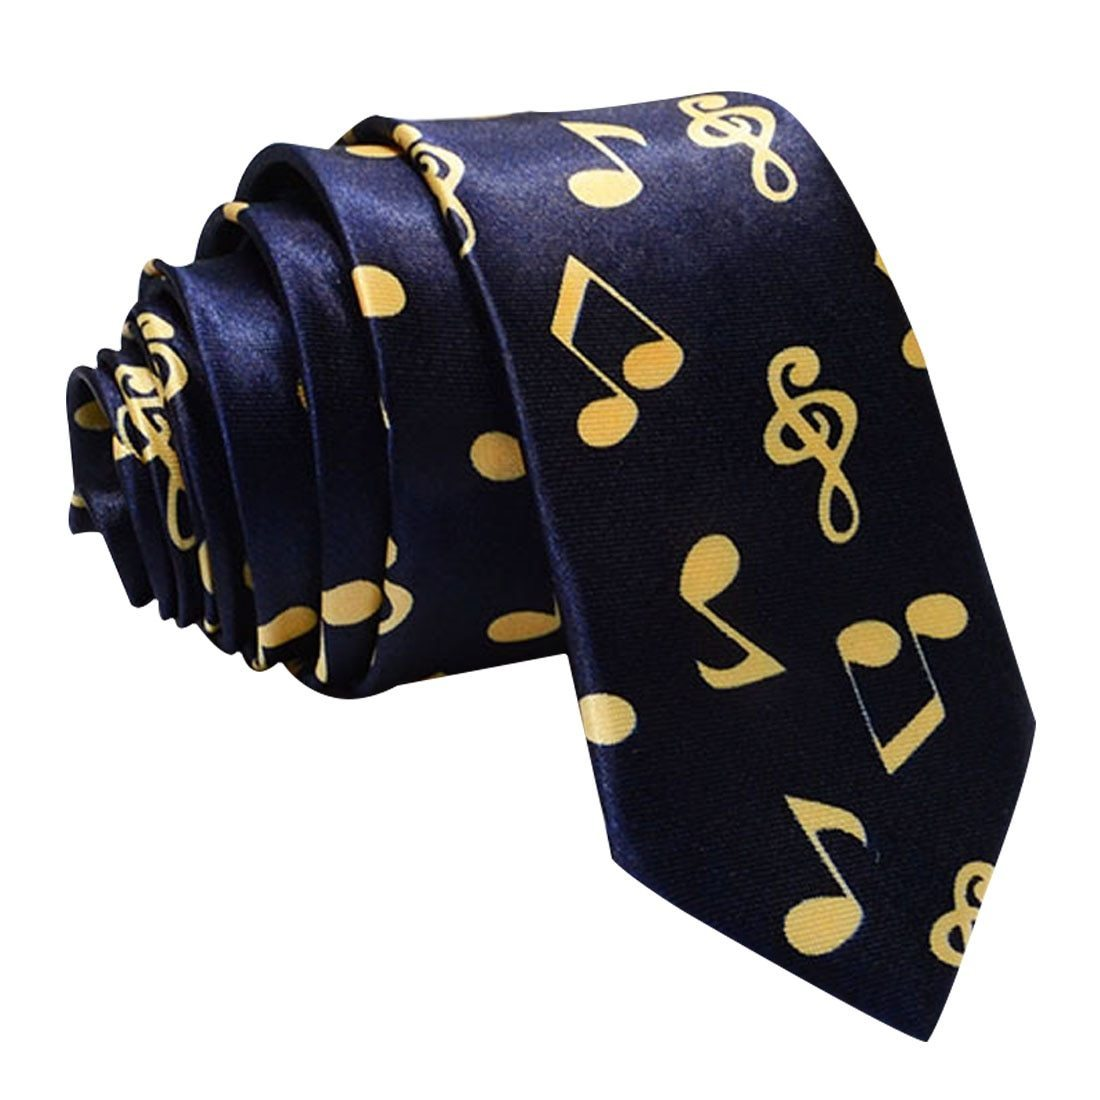 Charming 5cm Music Note Ties Musical Tie Music Notes Music Score Sounddresskily-dresskily